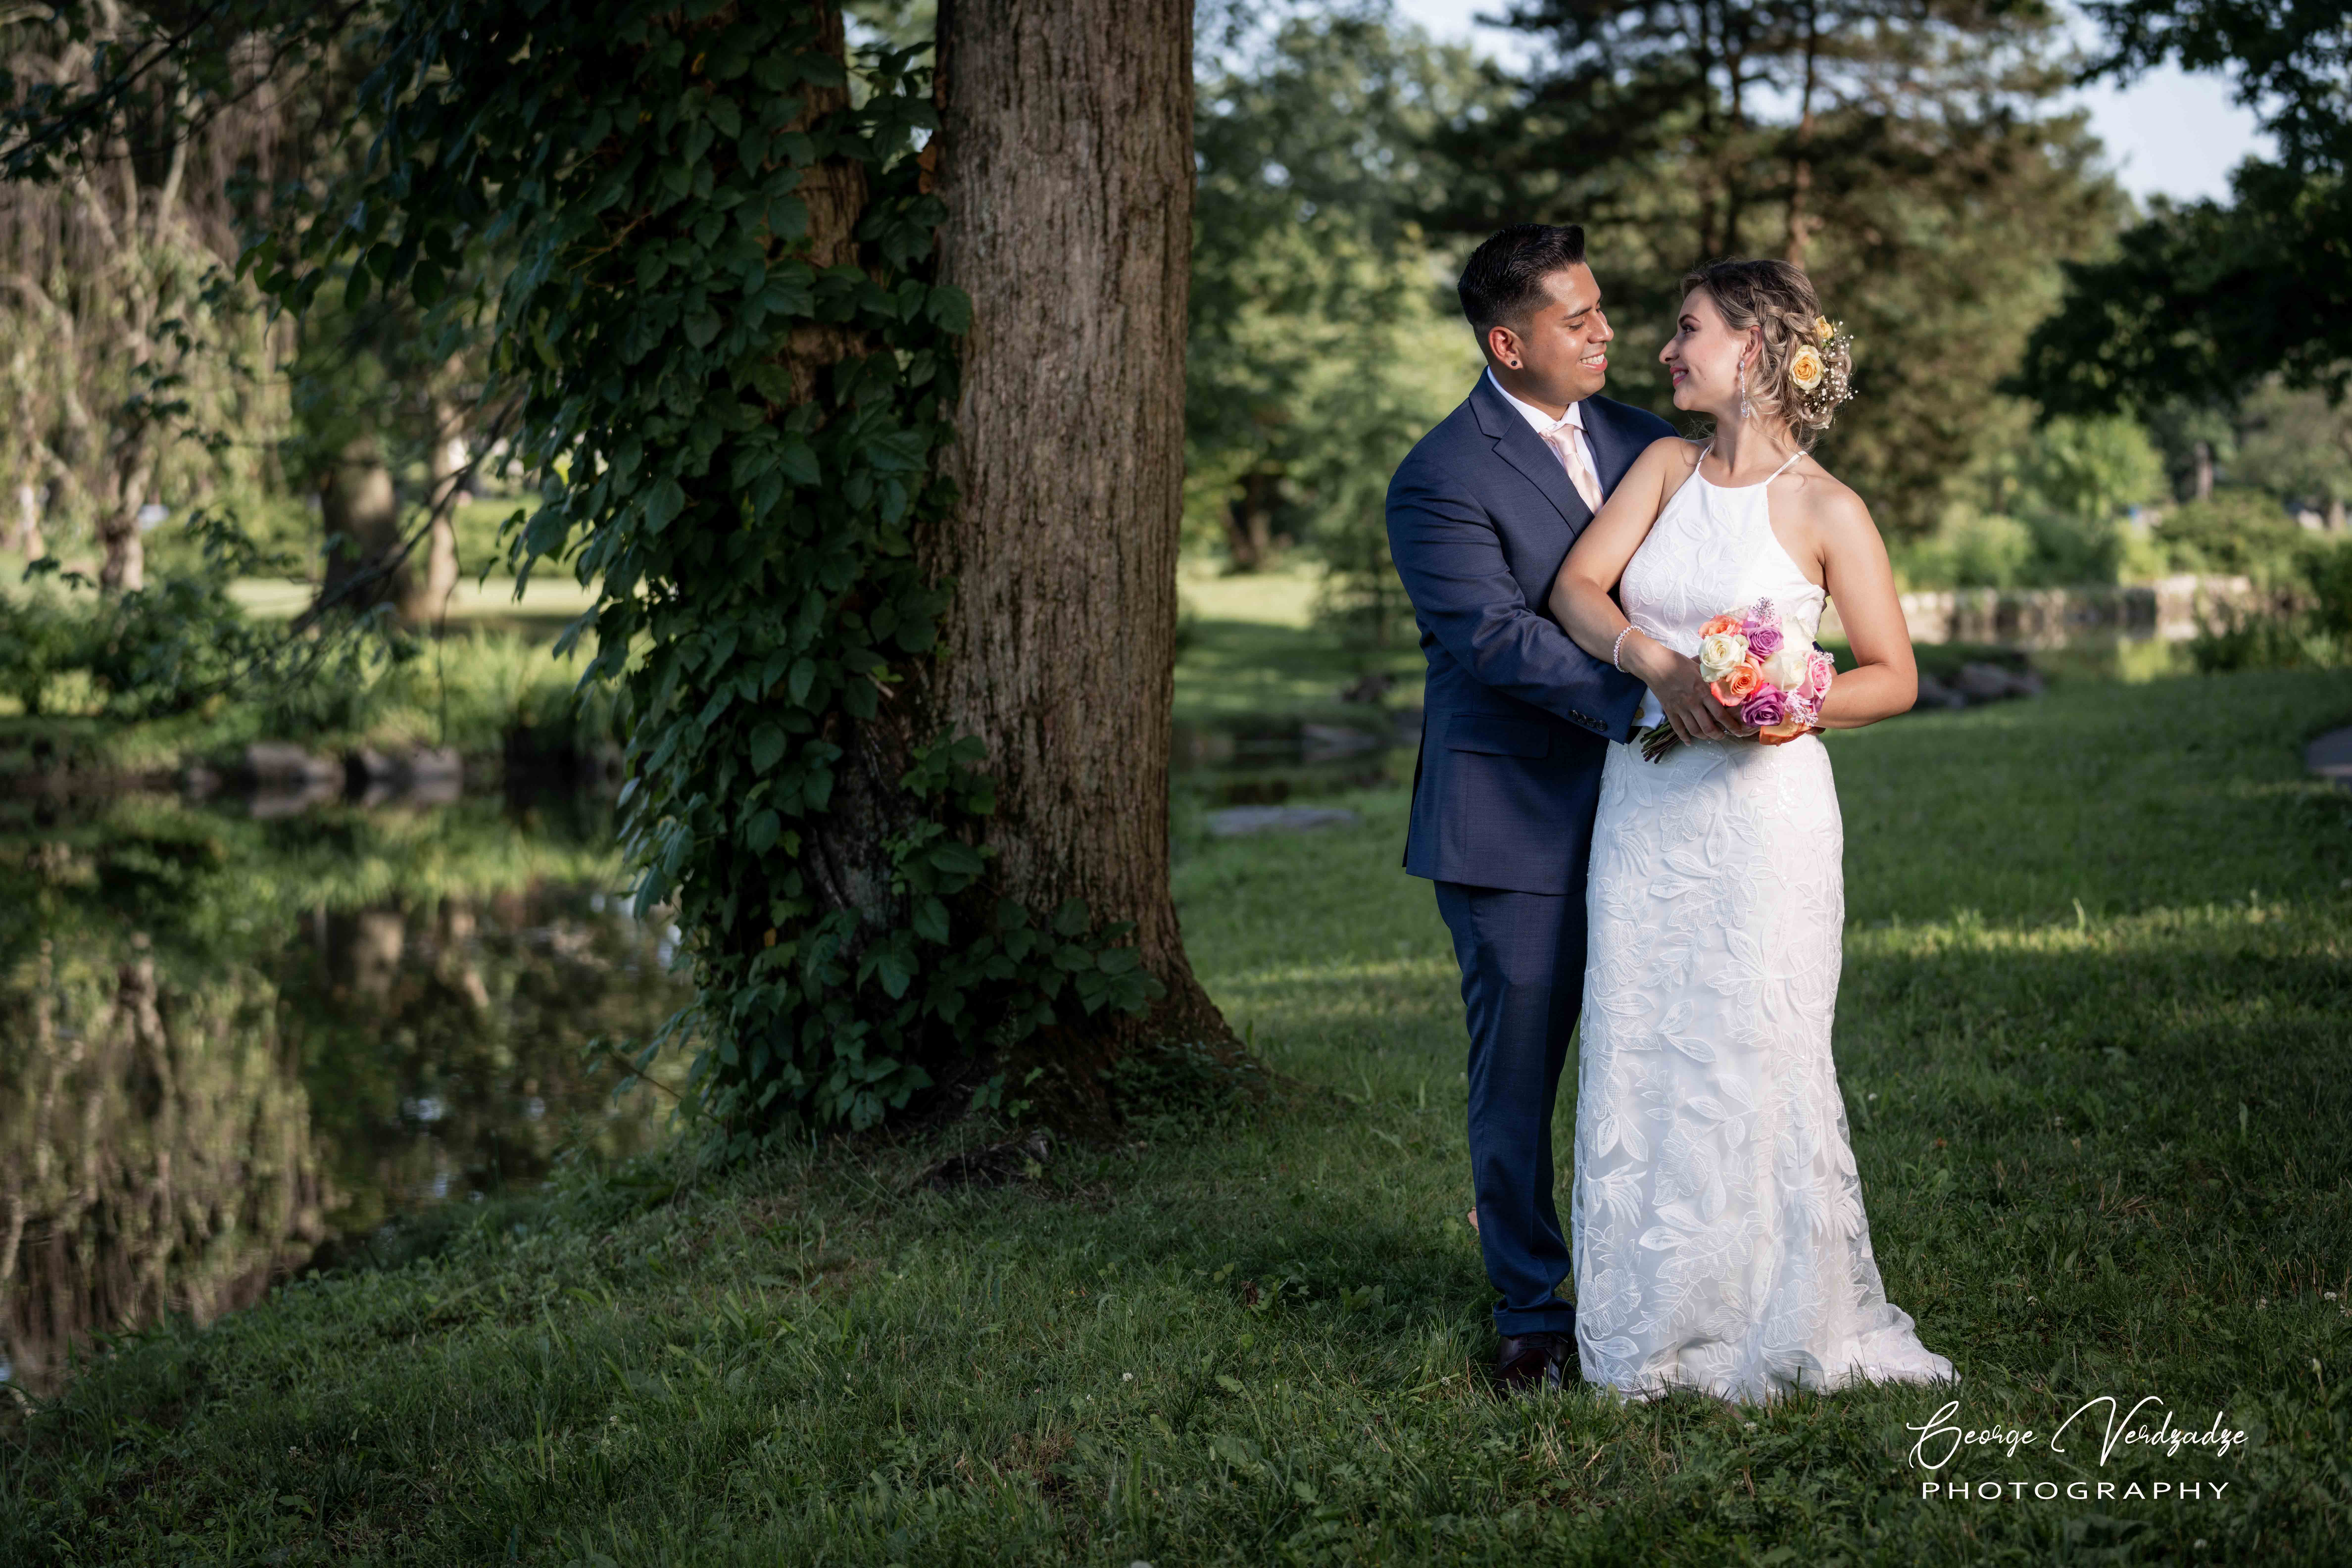 Outdoor wedding photography at Binney Park- Greenwich, CT